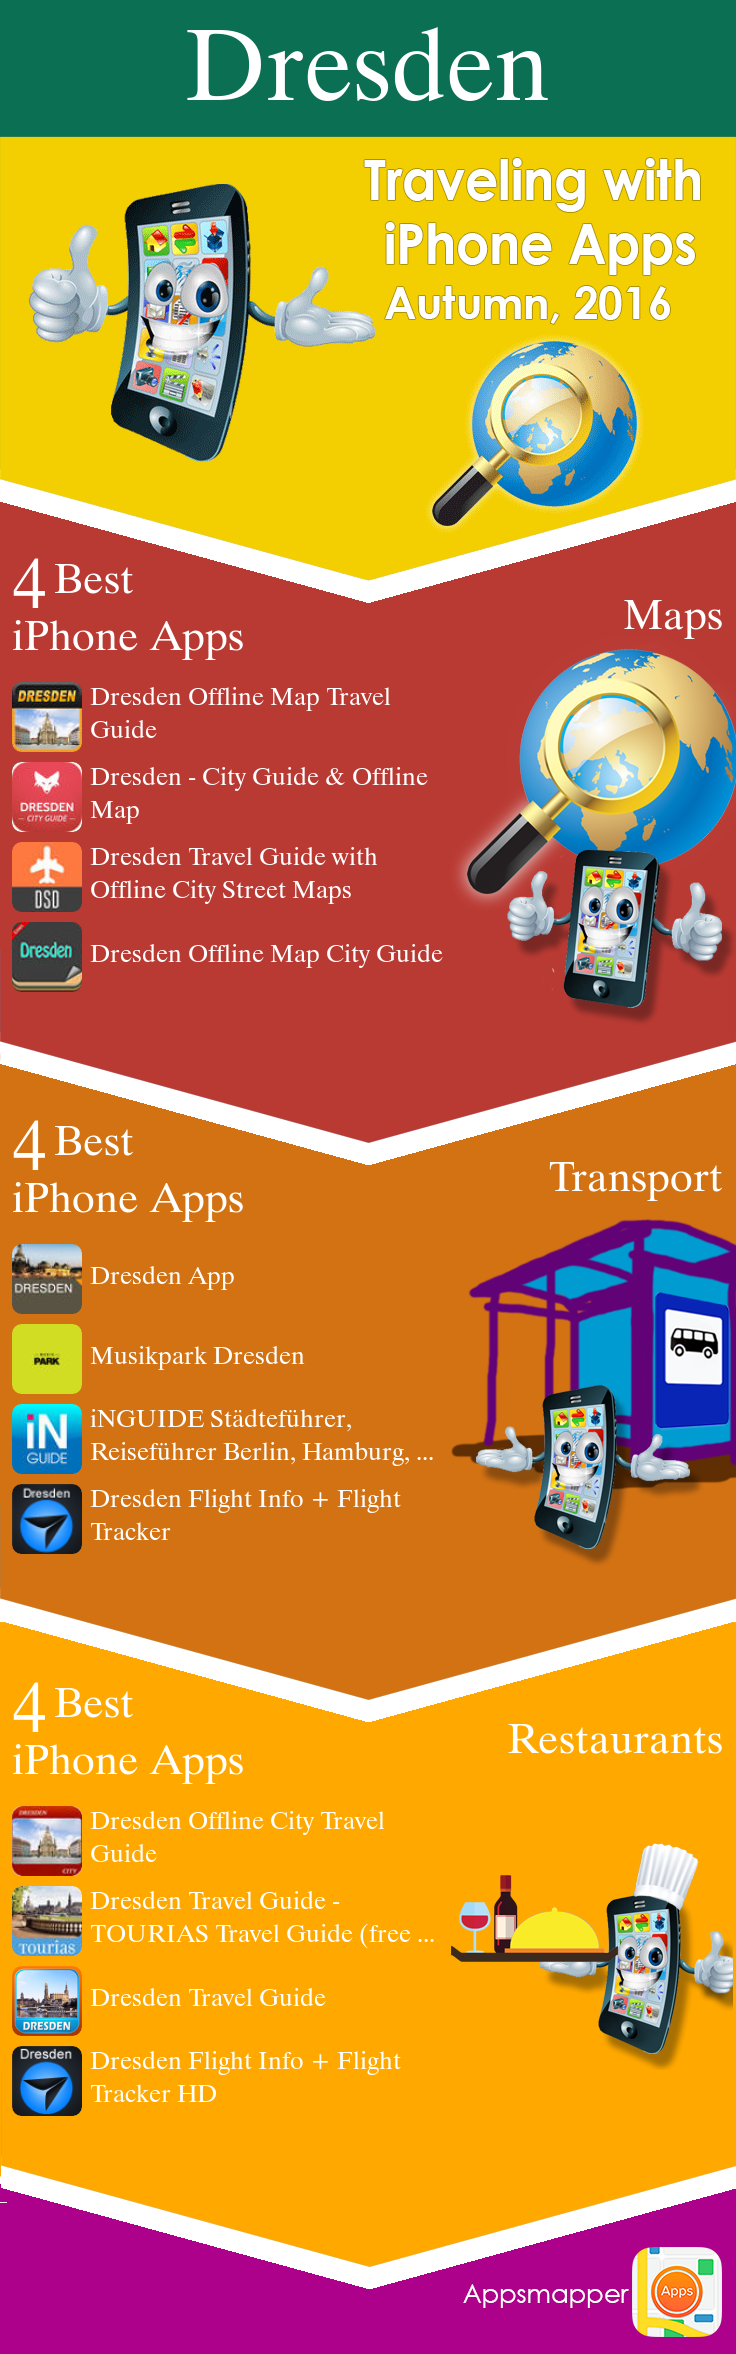 Dresden iPhone apps Travel Guides, Maps, Transportation